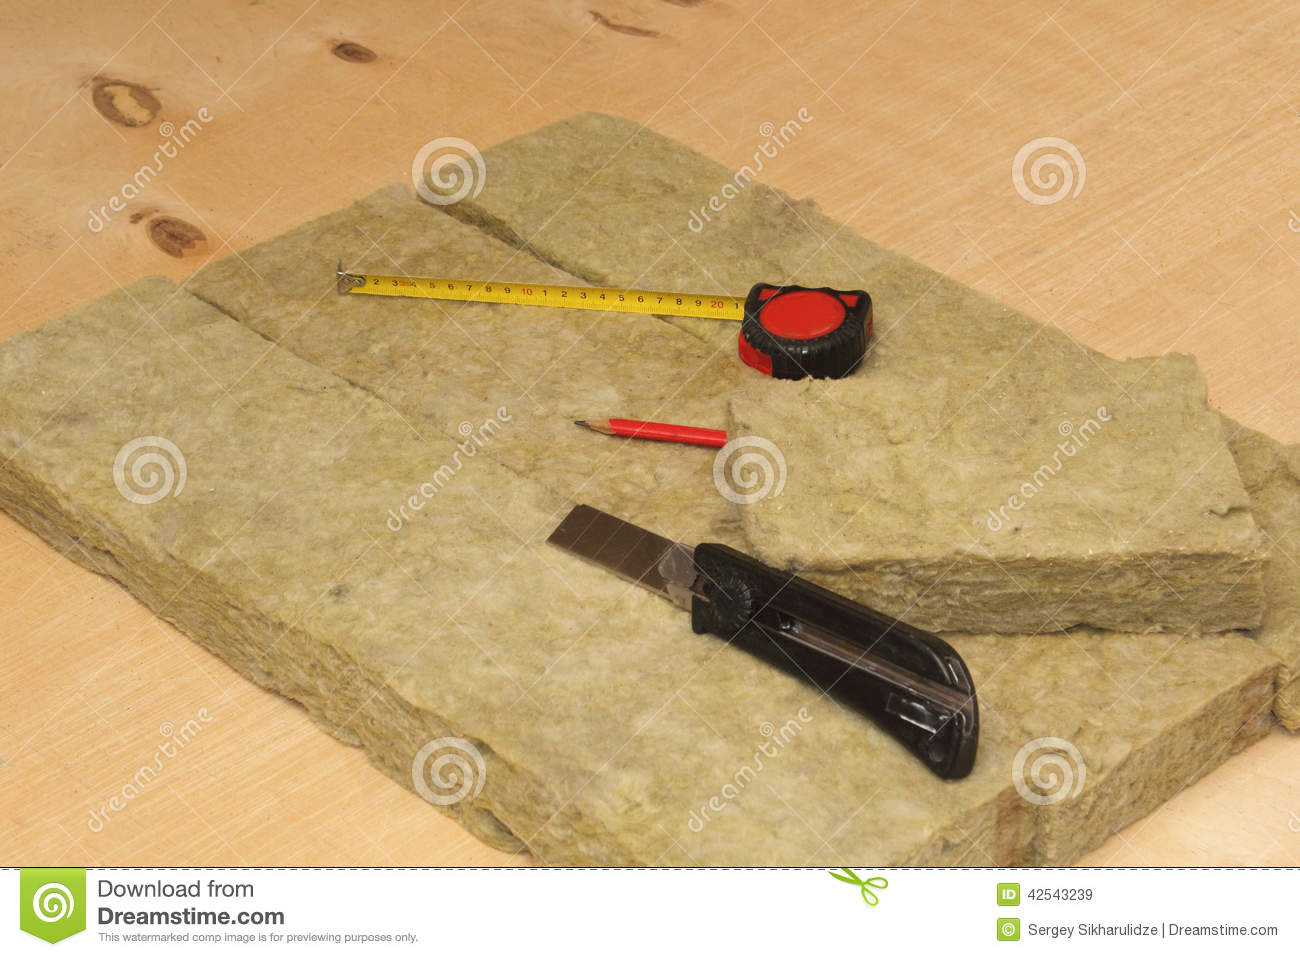 Cutted mineral wool, knife, pencil and tape-measure